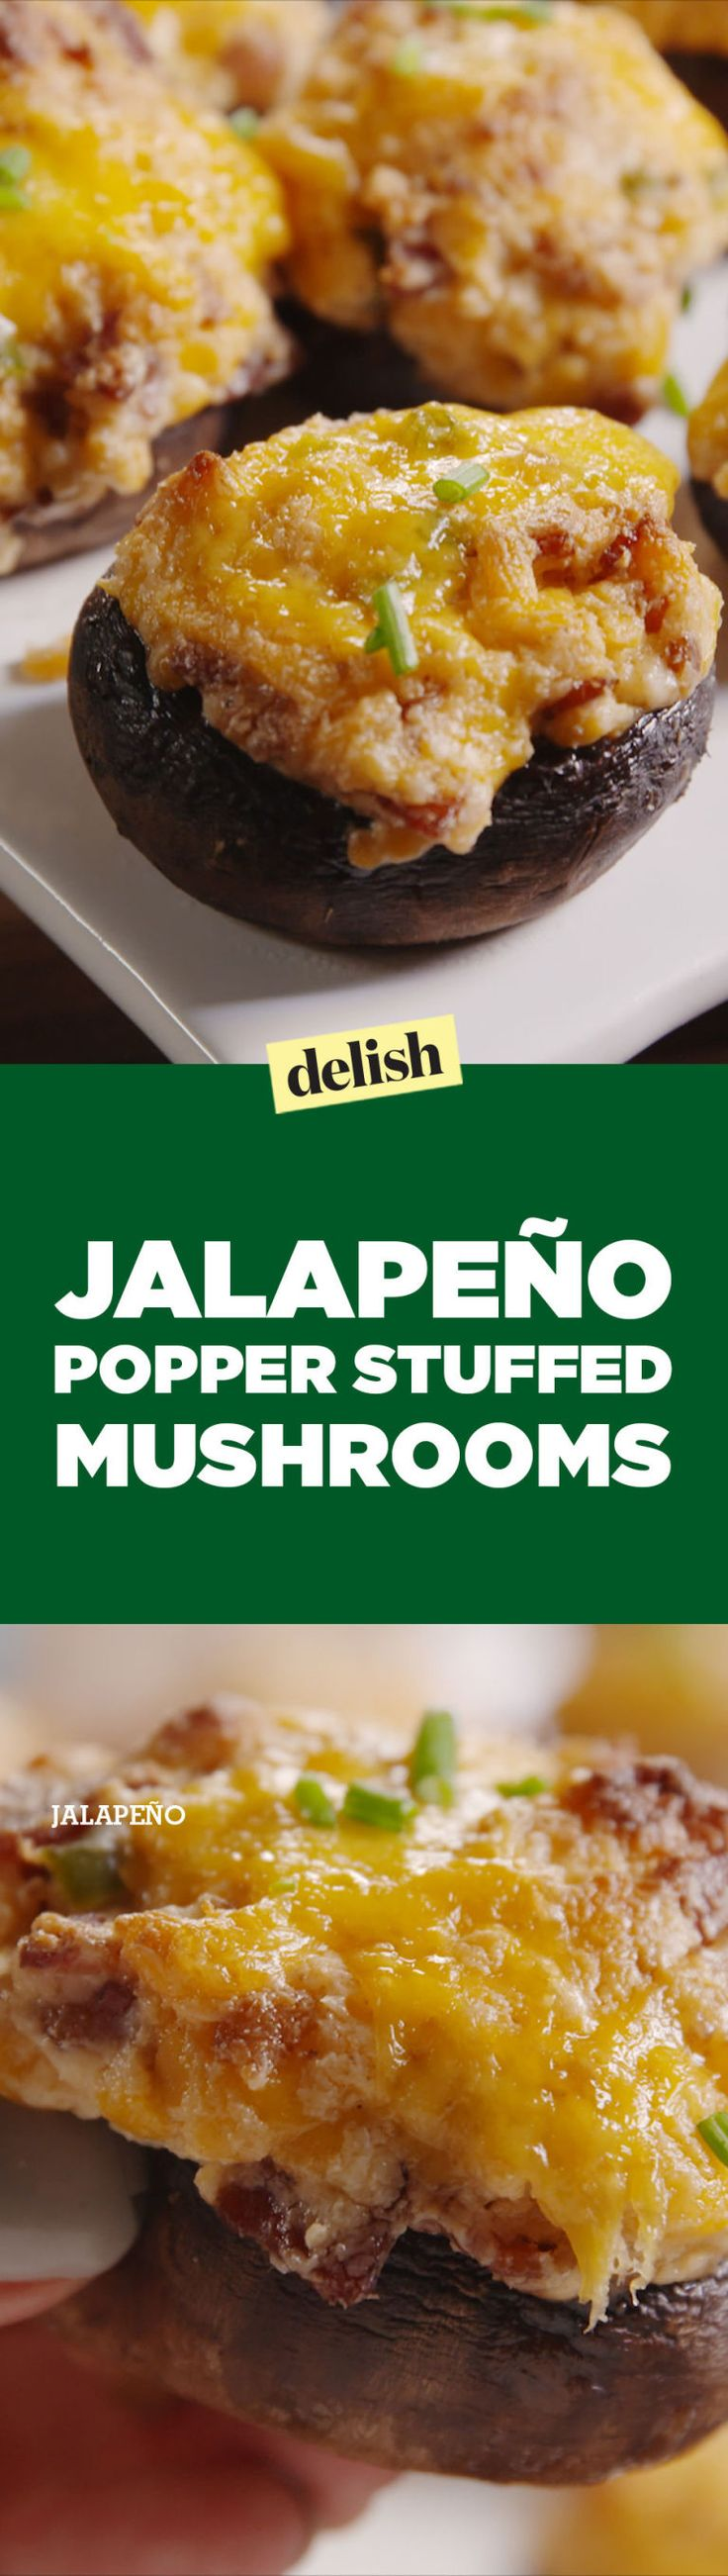 Jalapeño Popper Stuffed Mushrooms